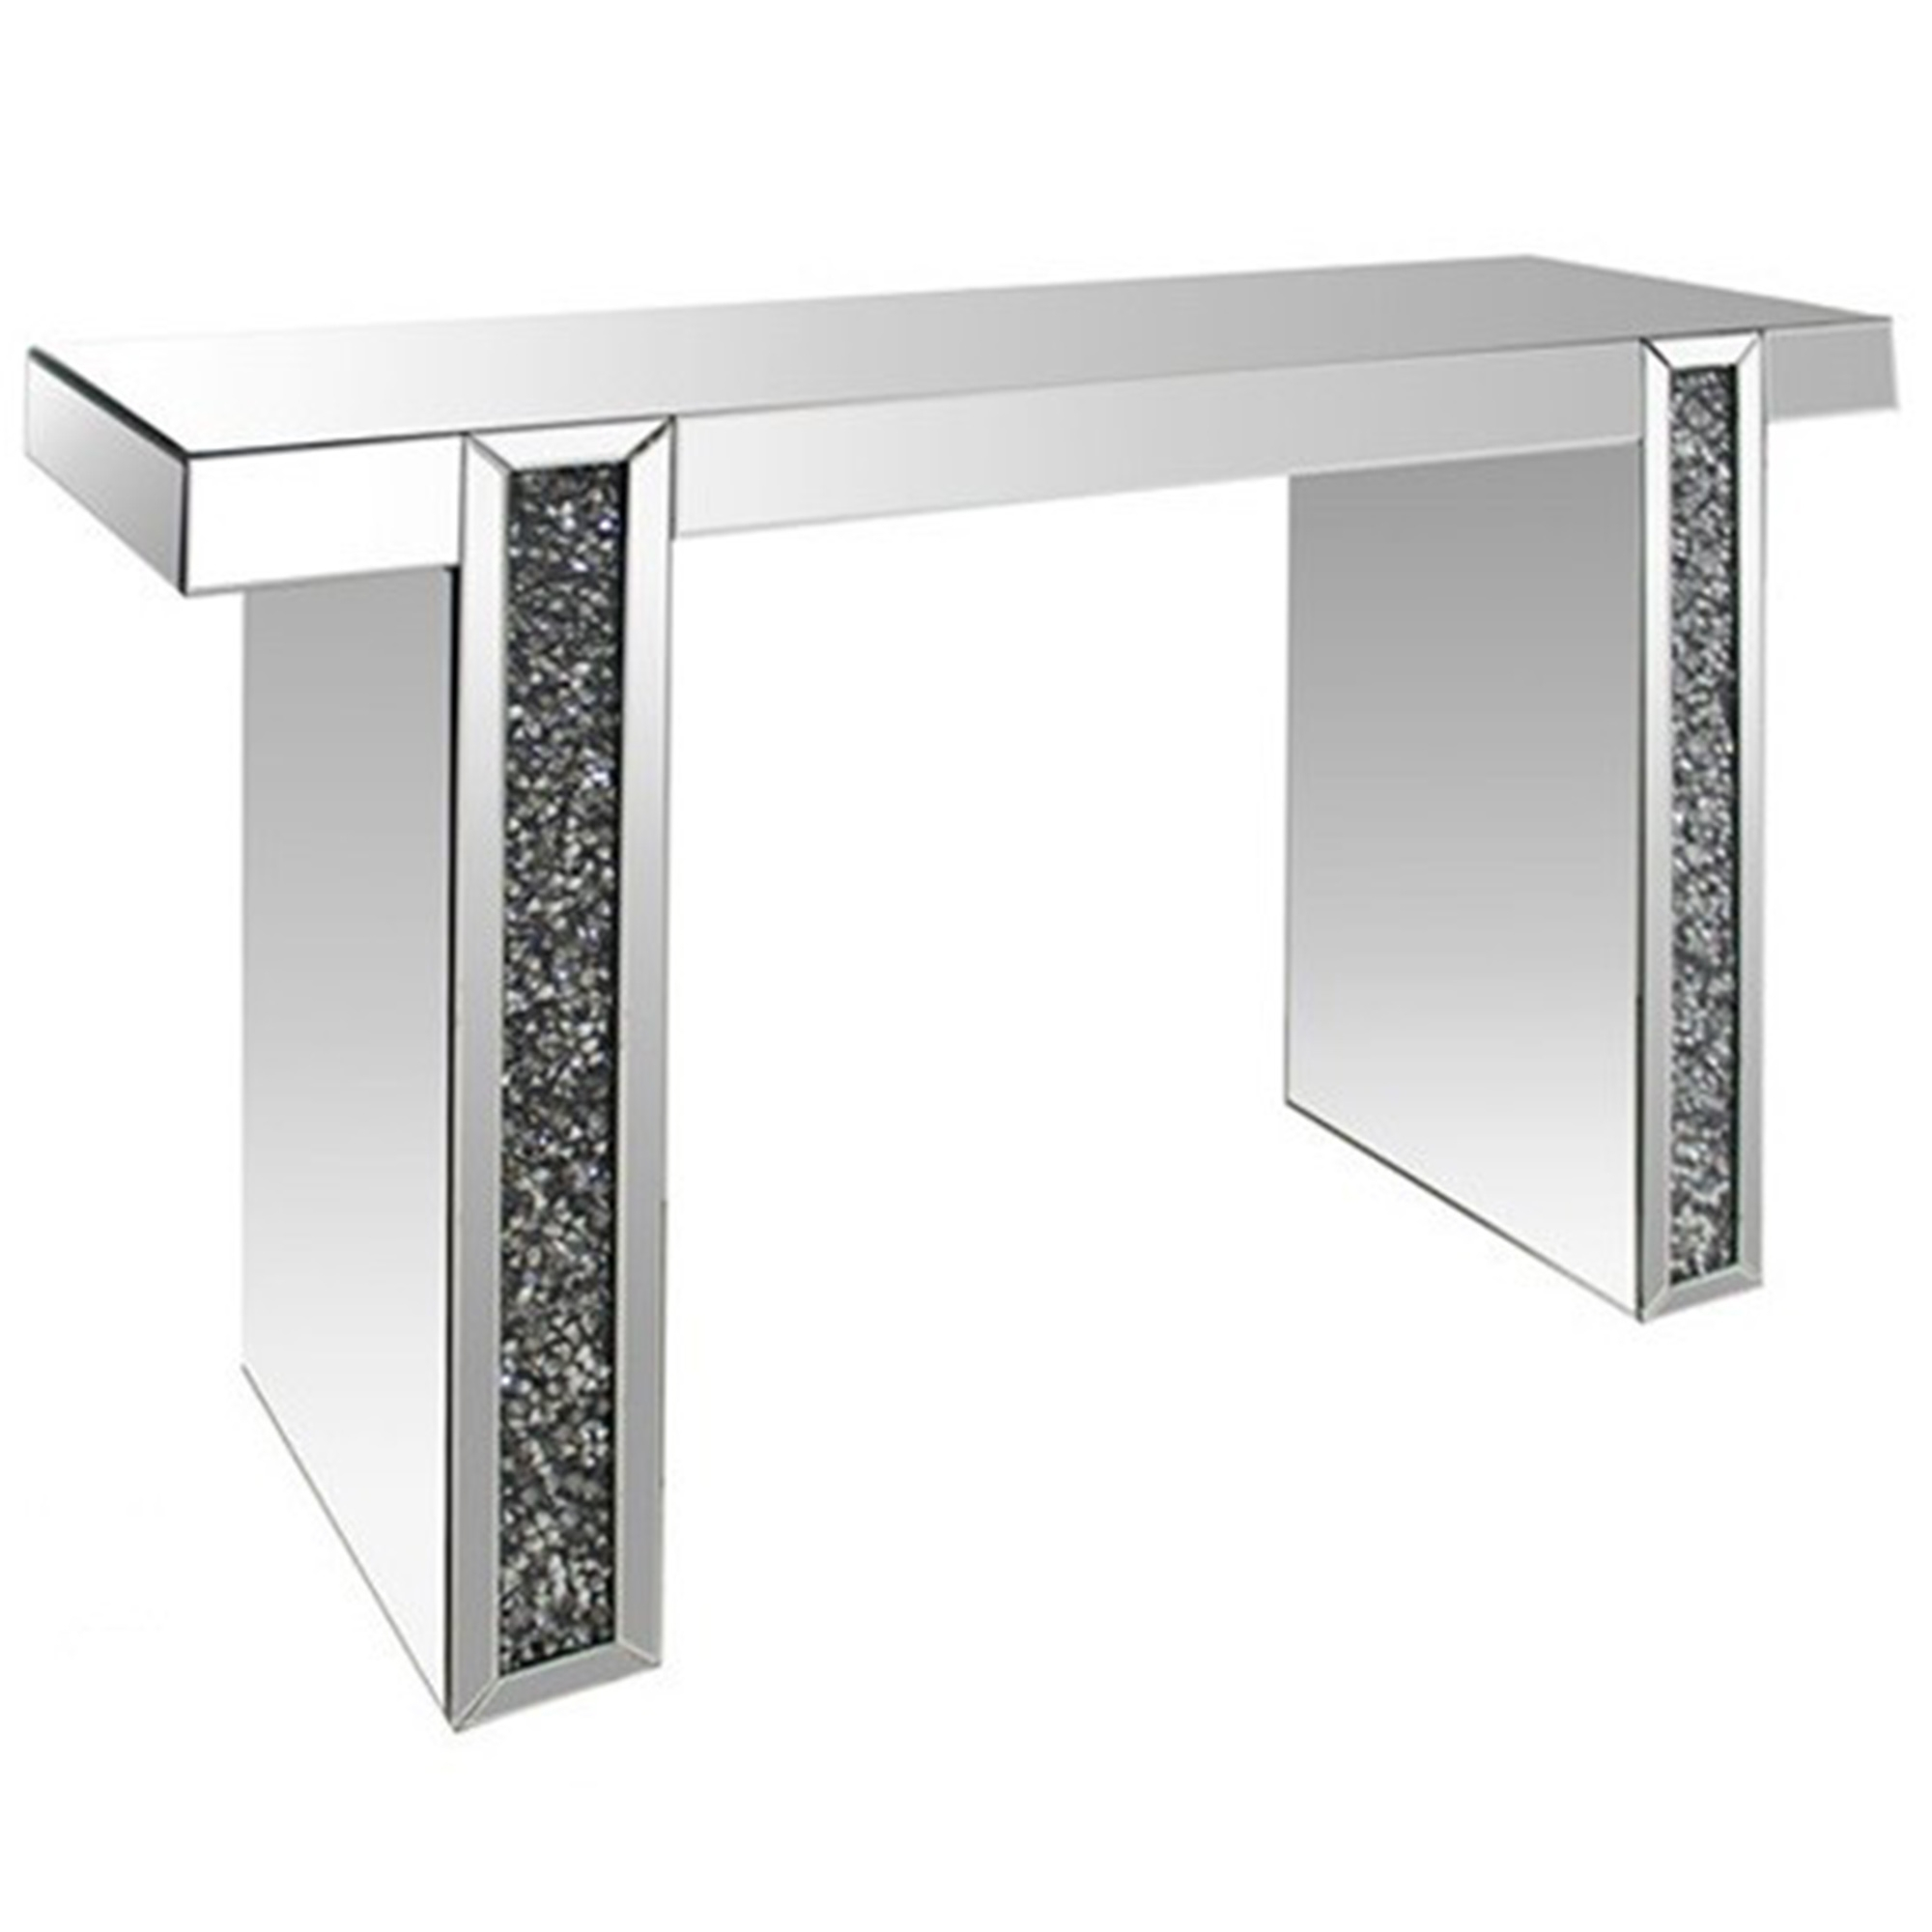 monza mirrored console table  french furniture from homesdirect  - monza mirrored console table